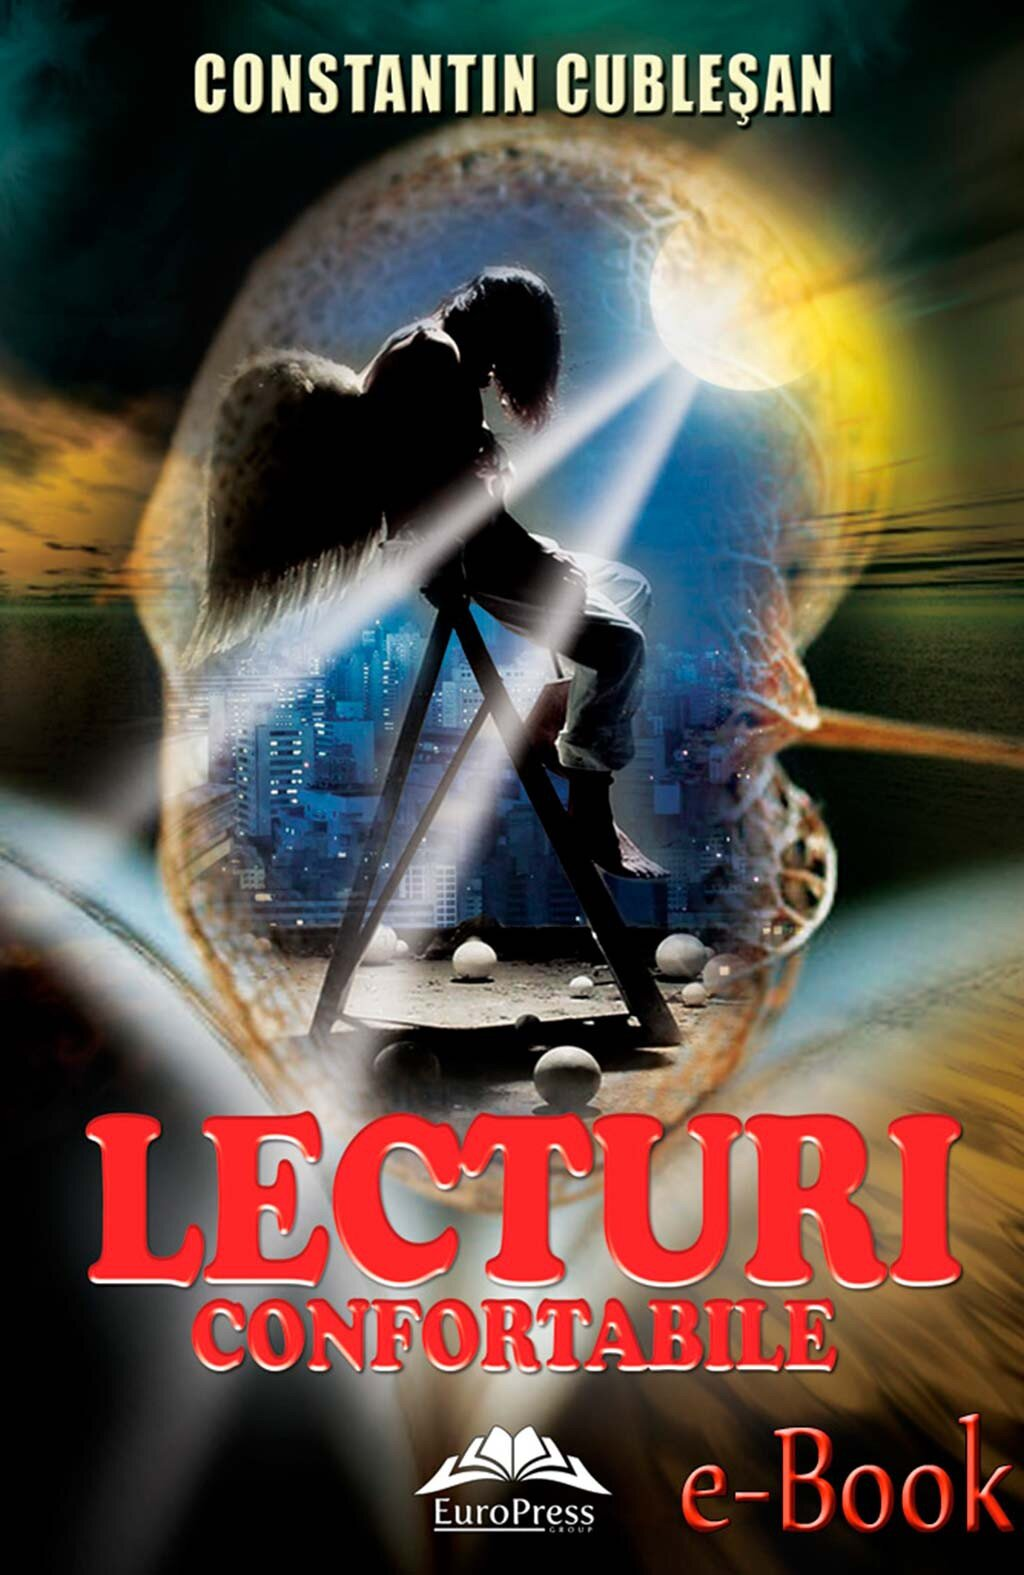 Lecturi confortabile (eBook)